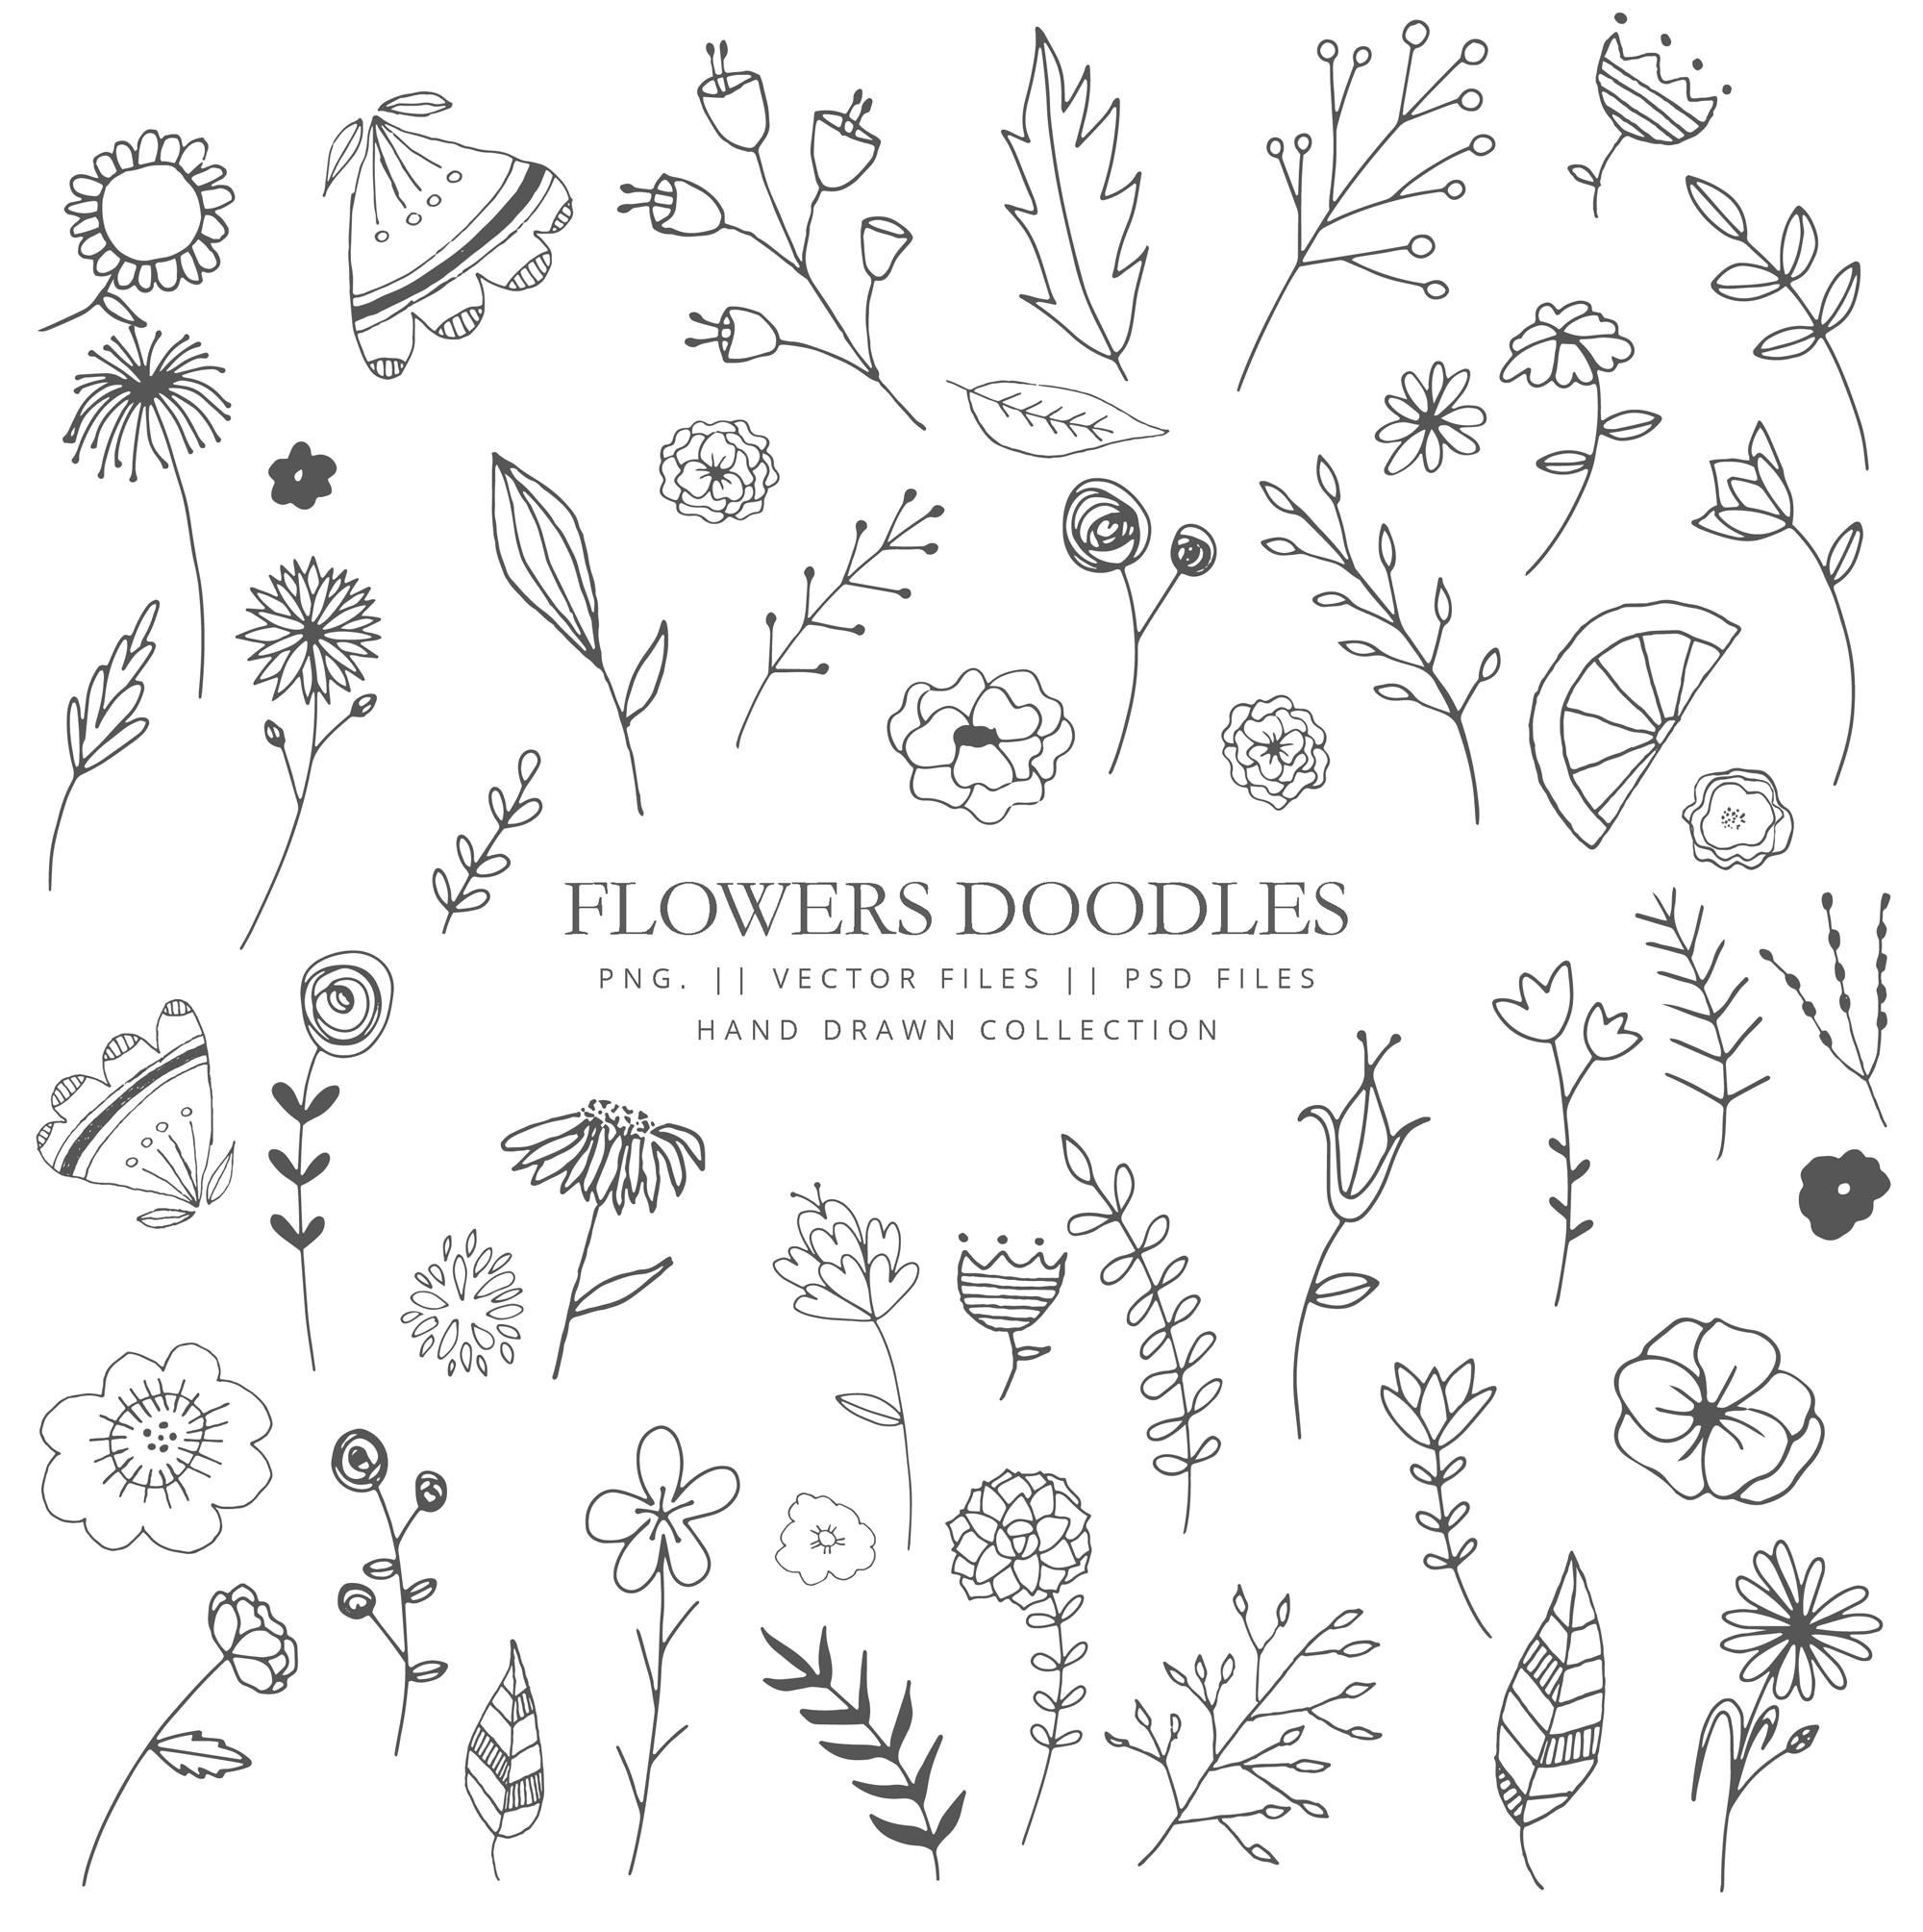 Clip Art With Doodle Flowers Leaves And Branches Hand Drawn Clipart Flowers Vector Branches Vector Doodle Flowers Lineart Flowers How To Draw Hands Flower Doodles Drawing Clipart